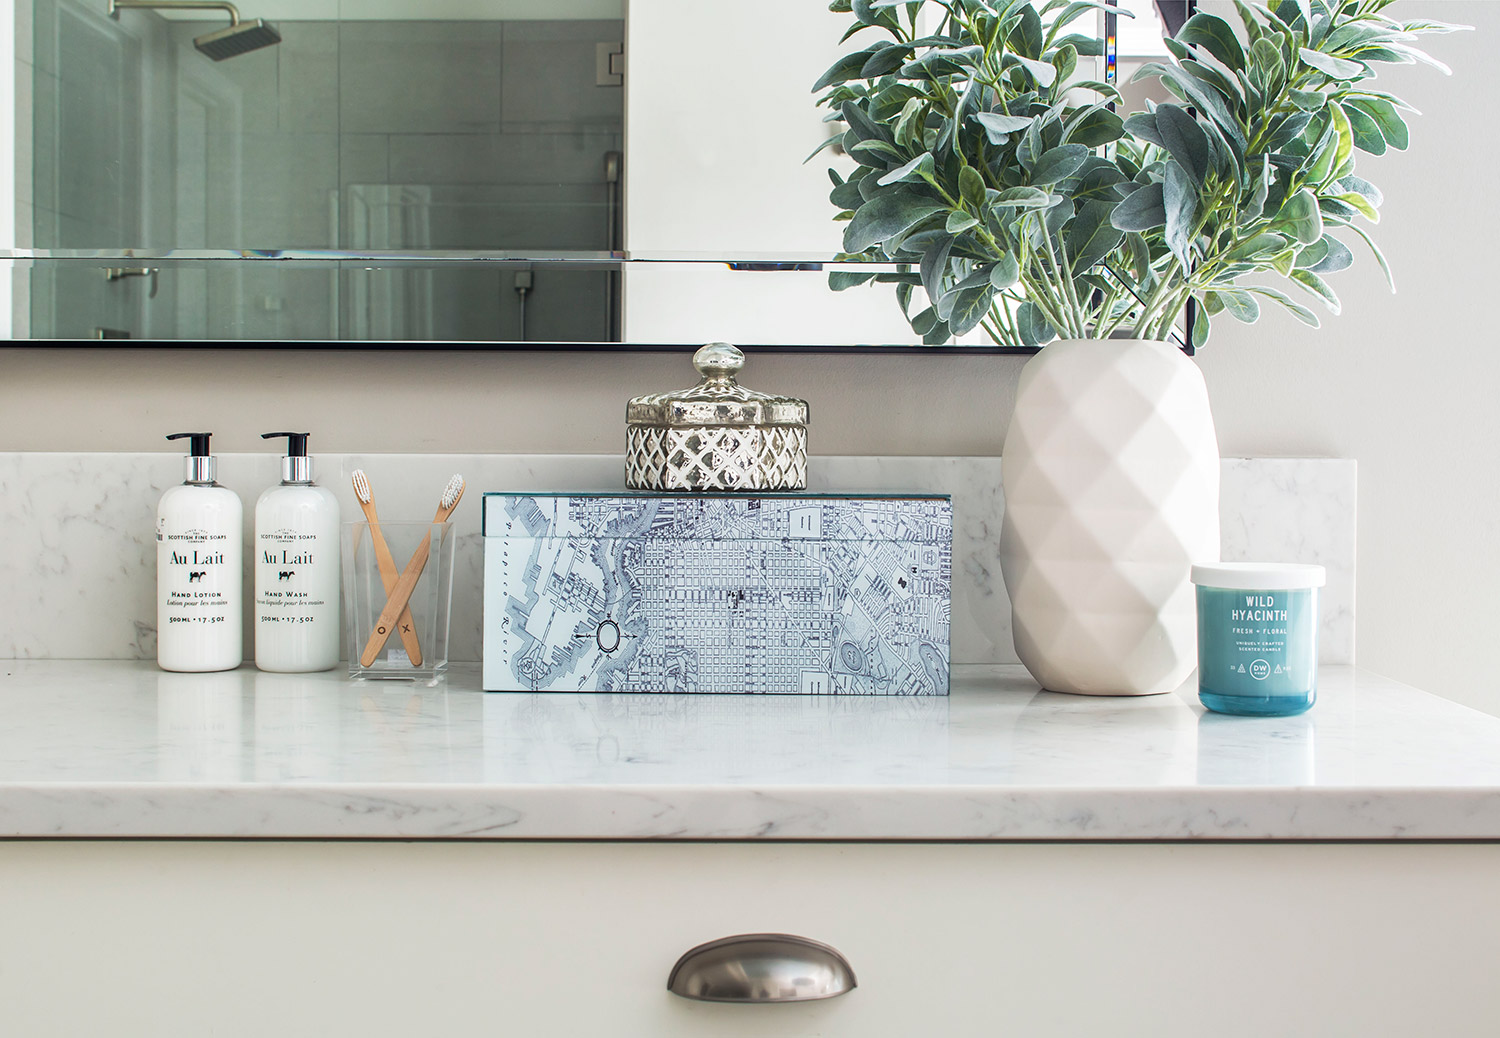 Custom built-in vanity with marble countertop and white cabinetry in master bathroom